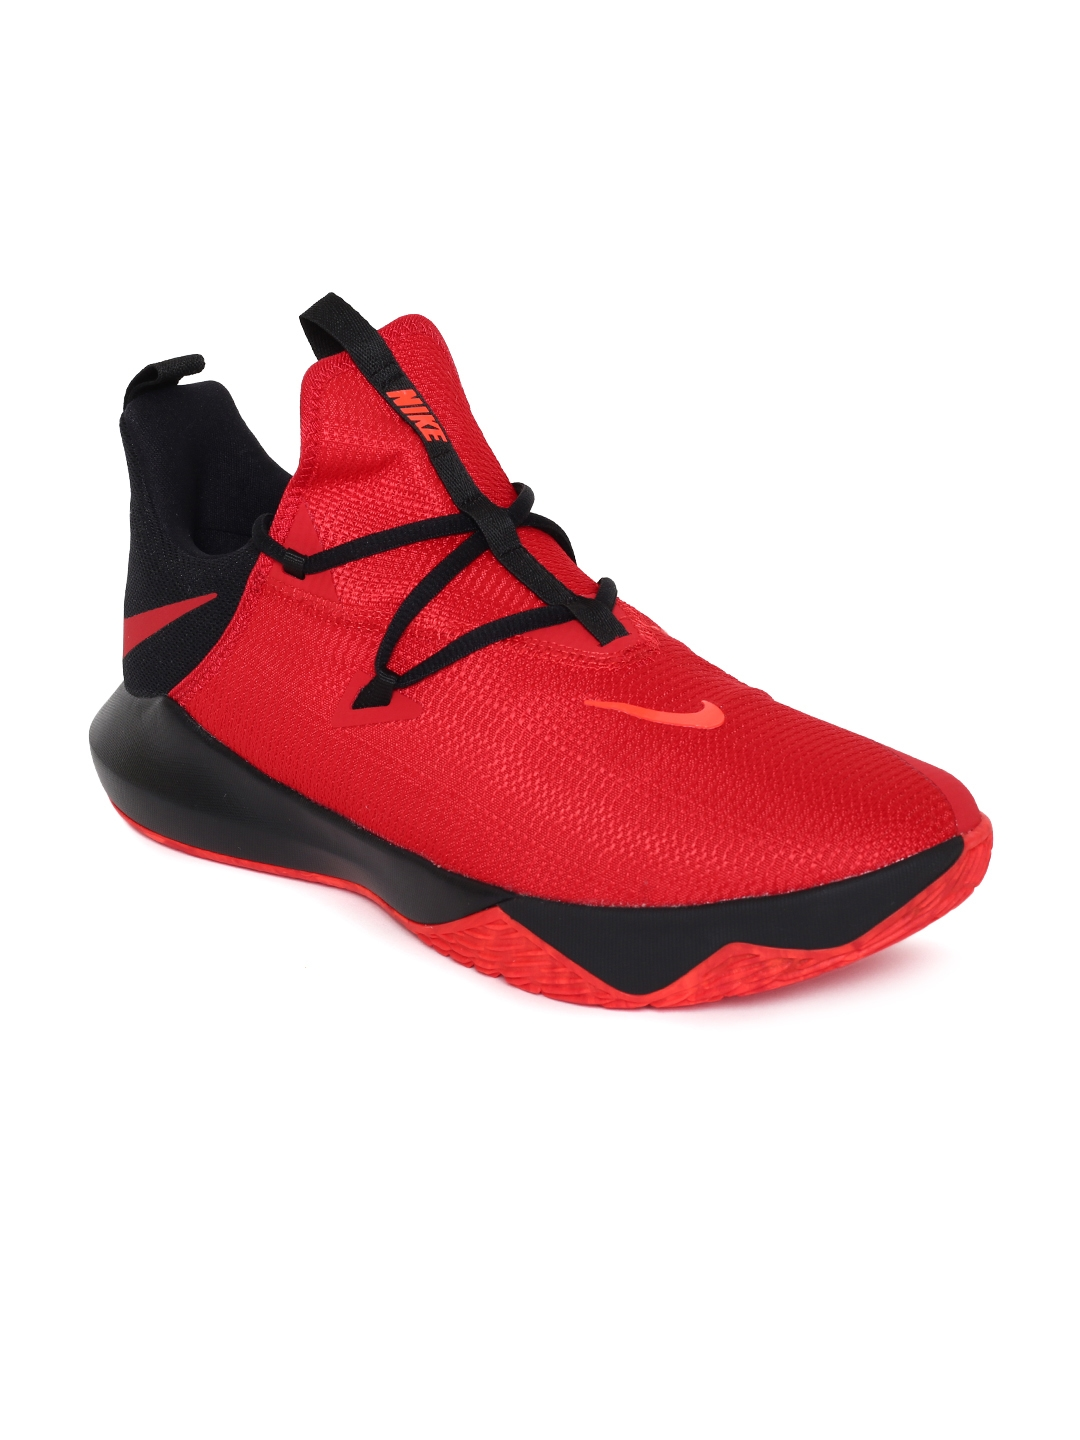 d1f7b01065c3 Buy Nike Men Red Solid ZOOM SHIFT 2 Basketball Shoes - Sports Shoes ...